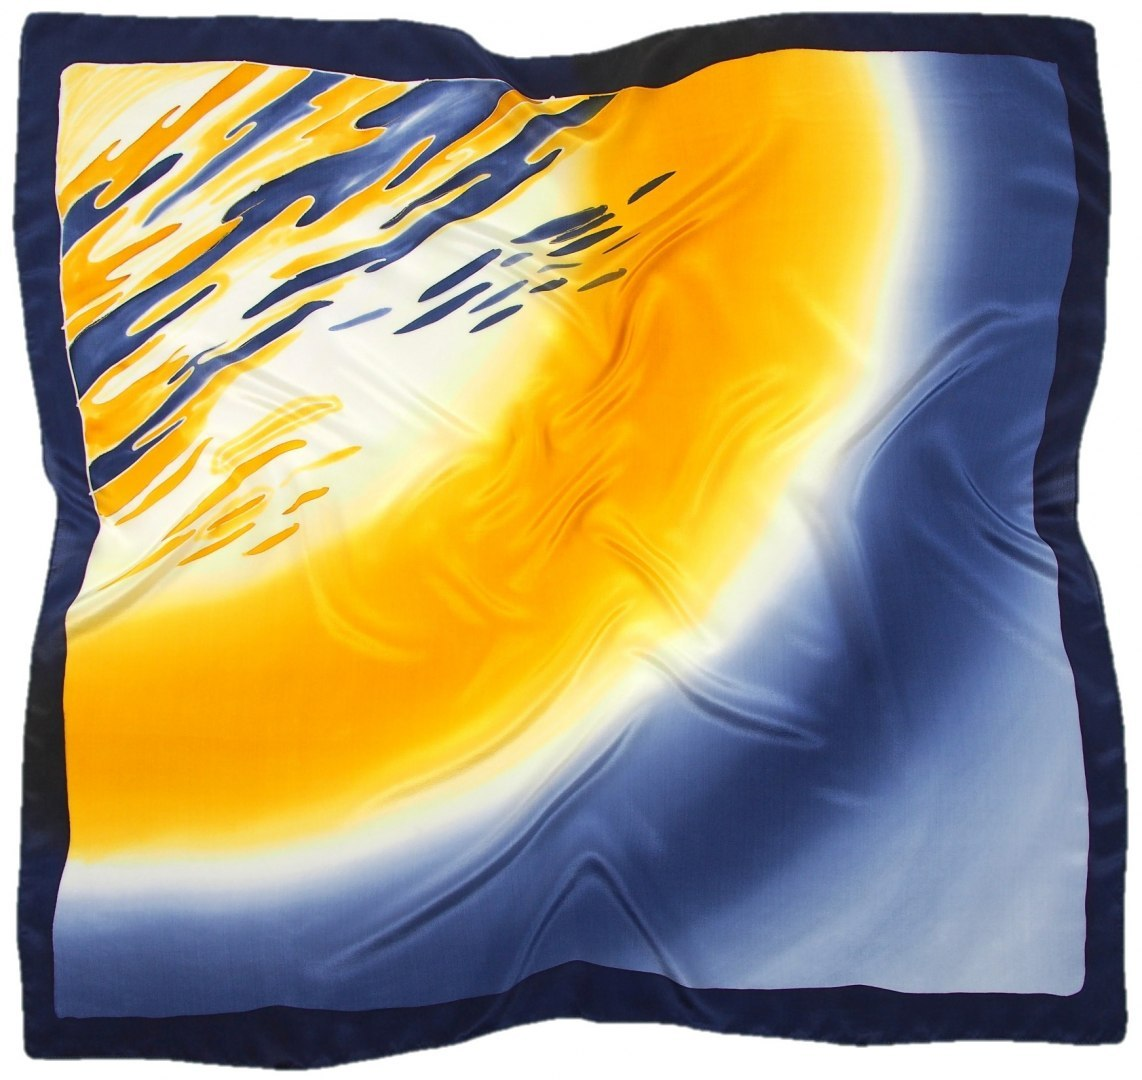 AM-671 Hand-painted silk scarf, 90x90cm